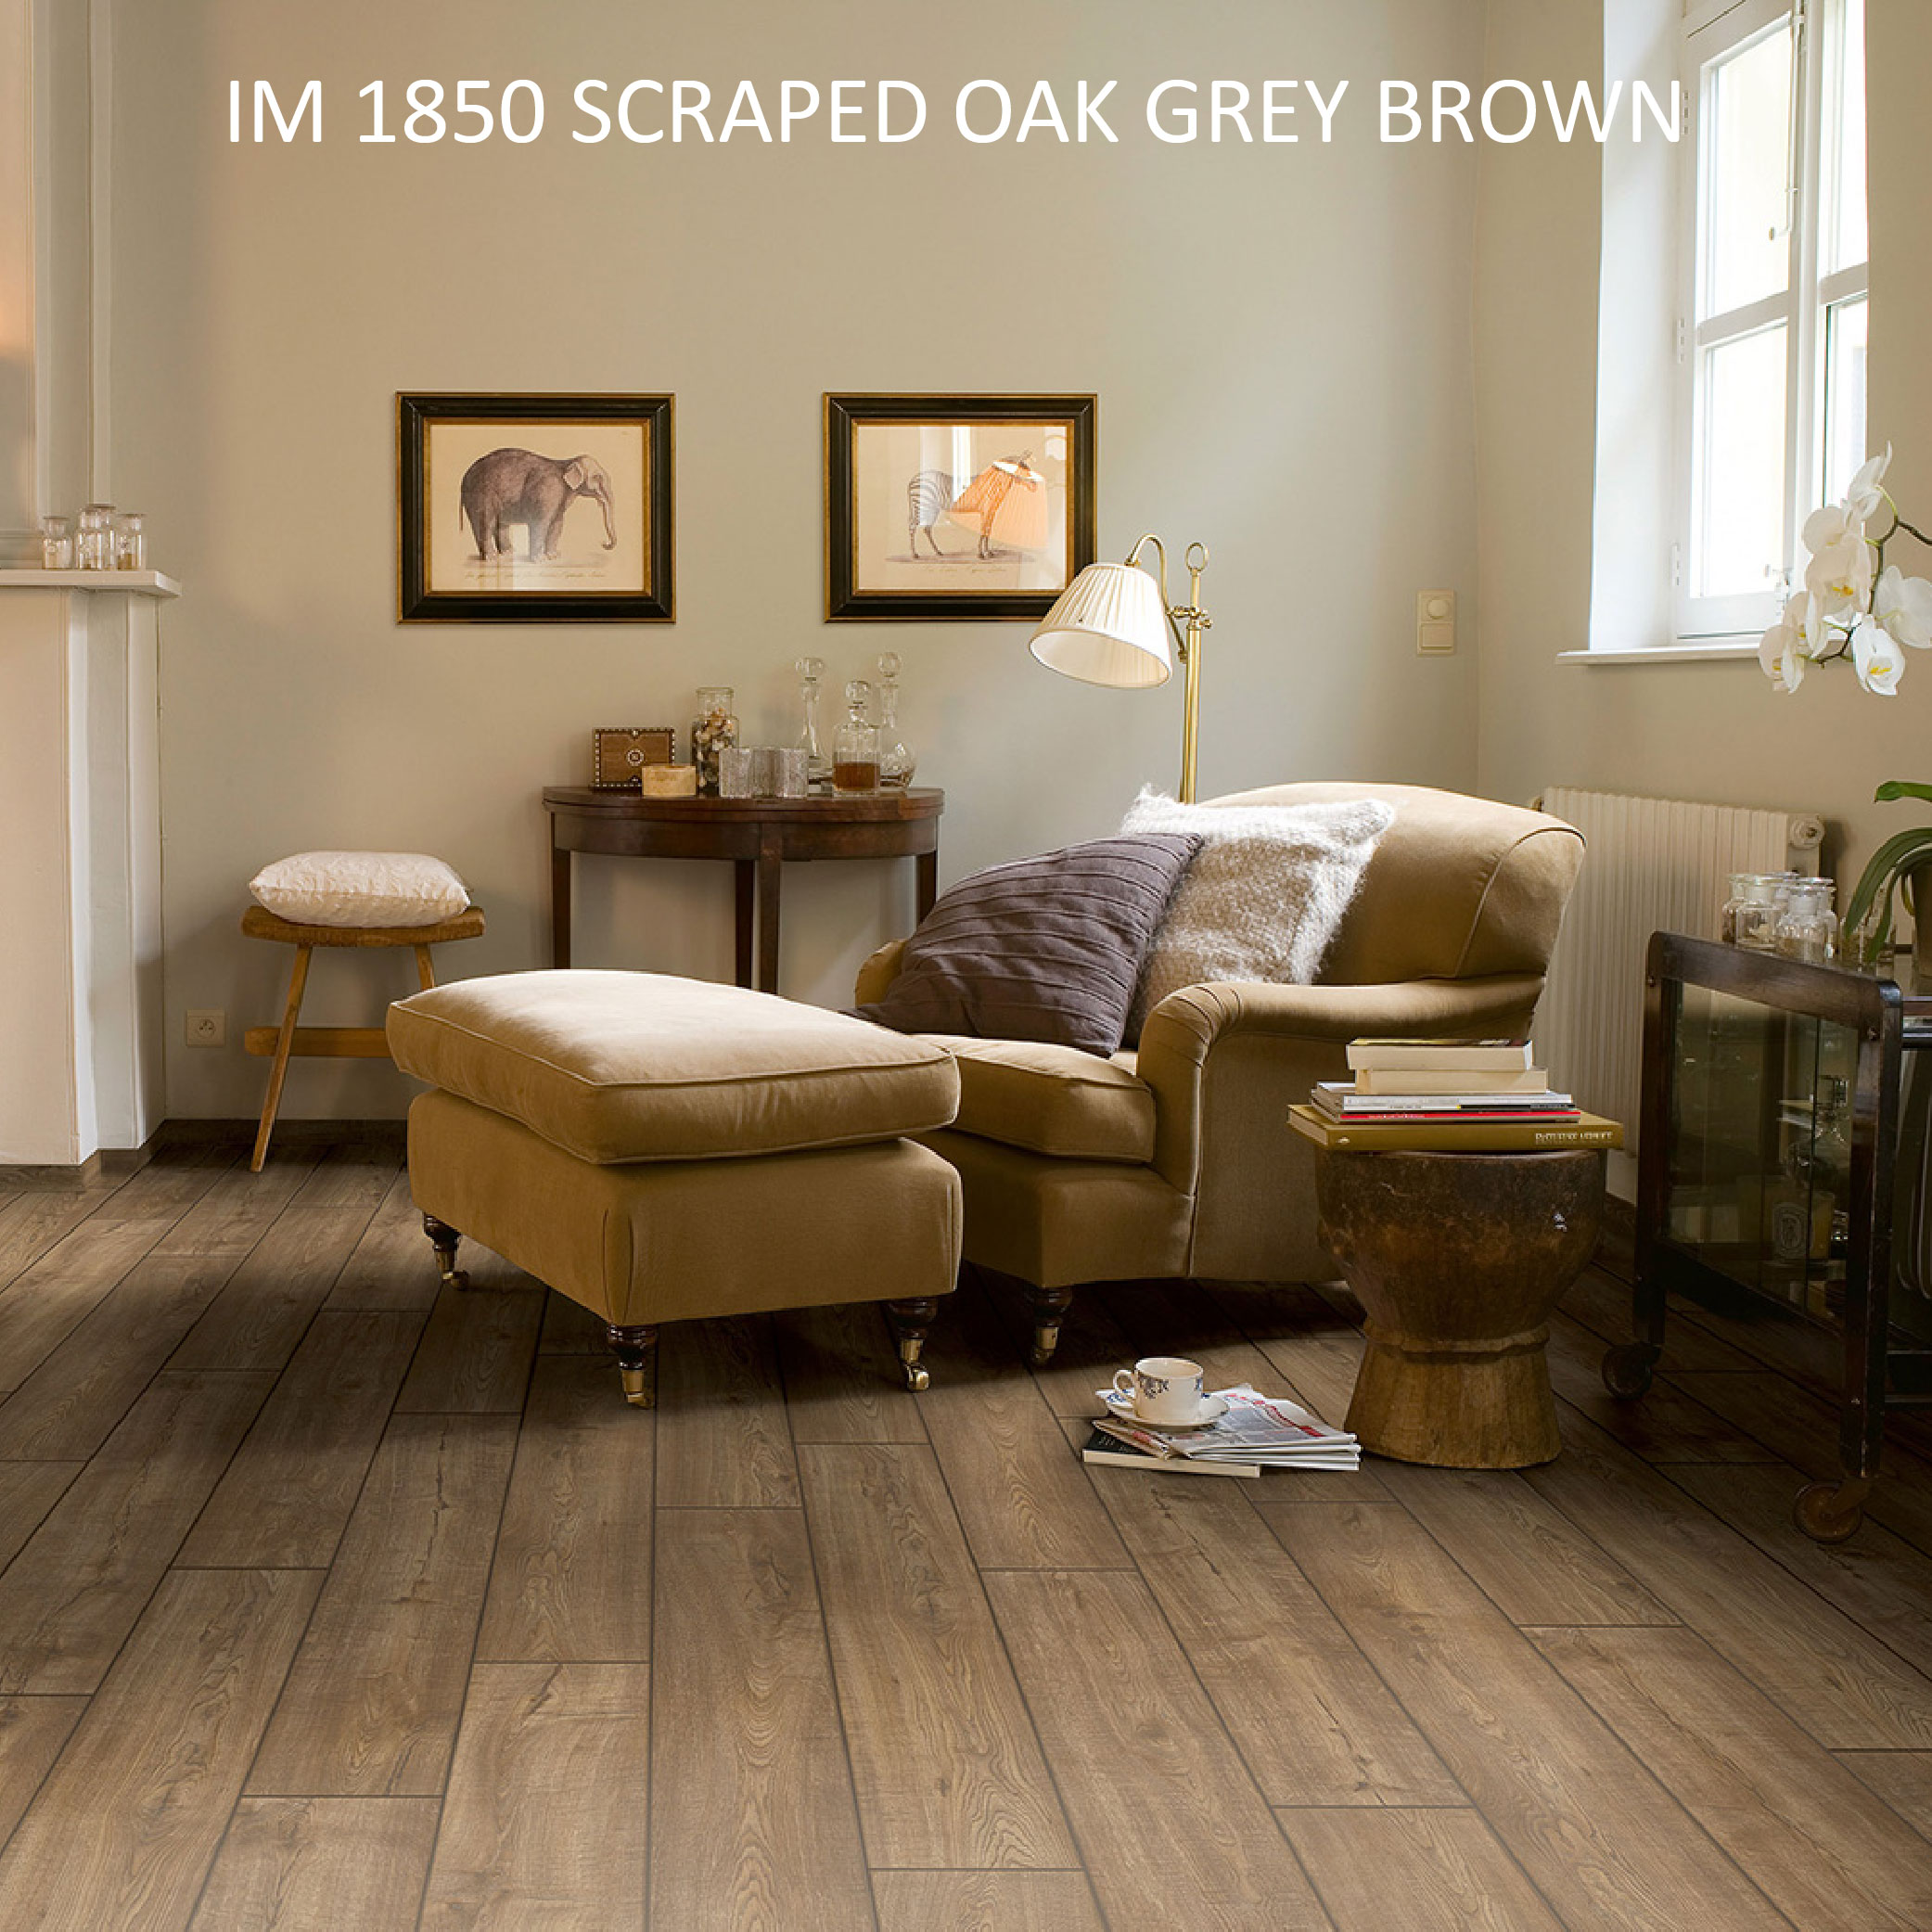 IM 1850 SCRAPED OAK GREY BROWN-02